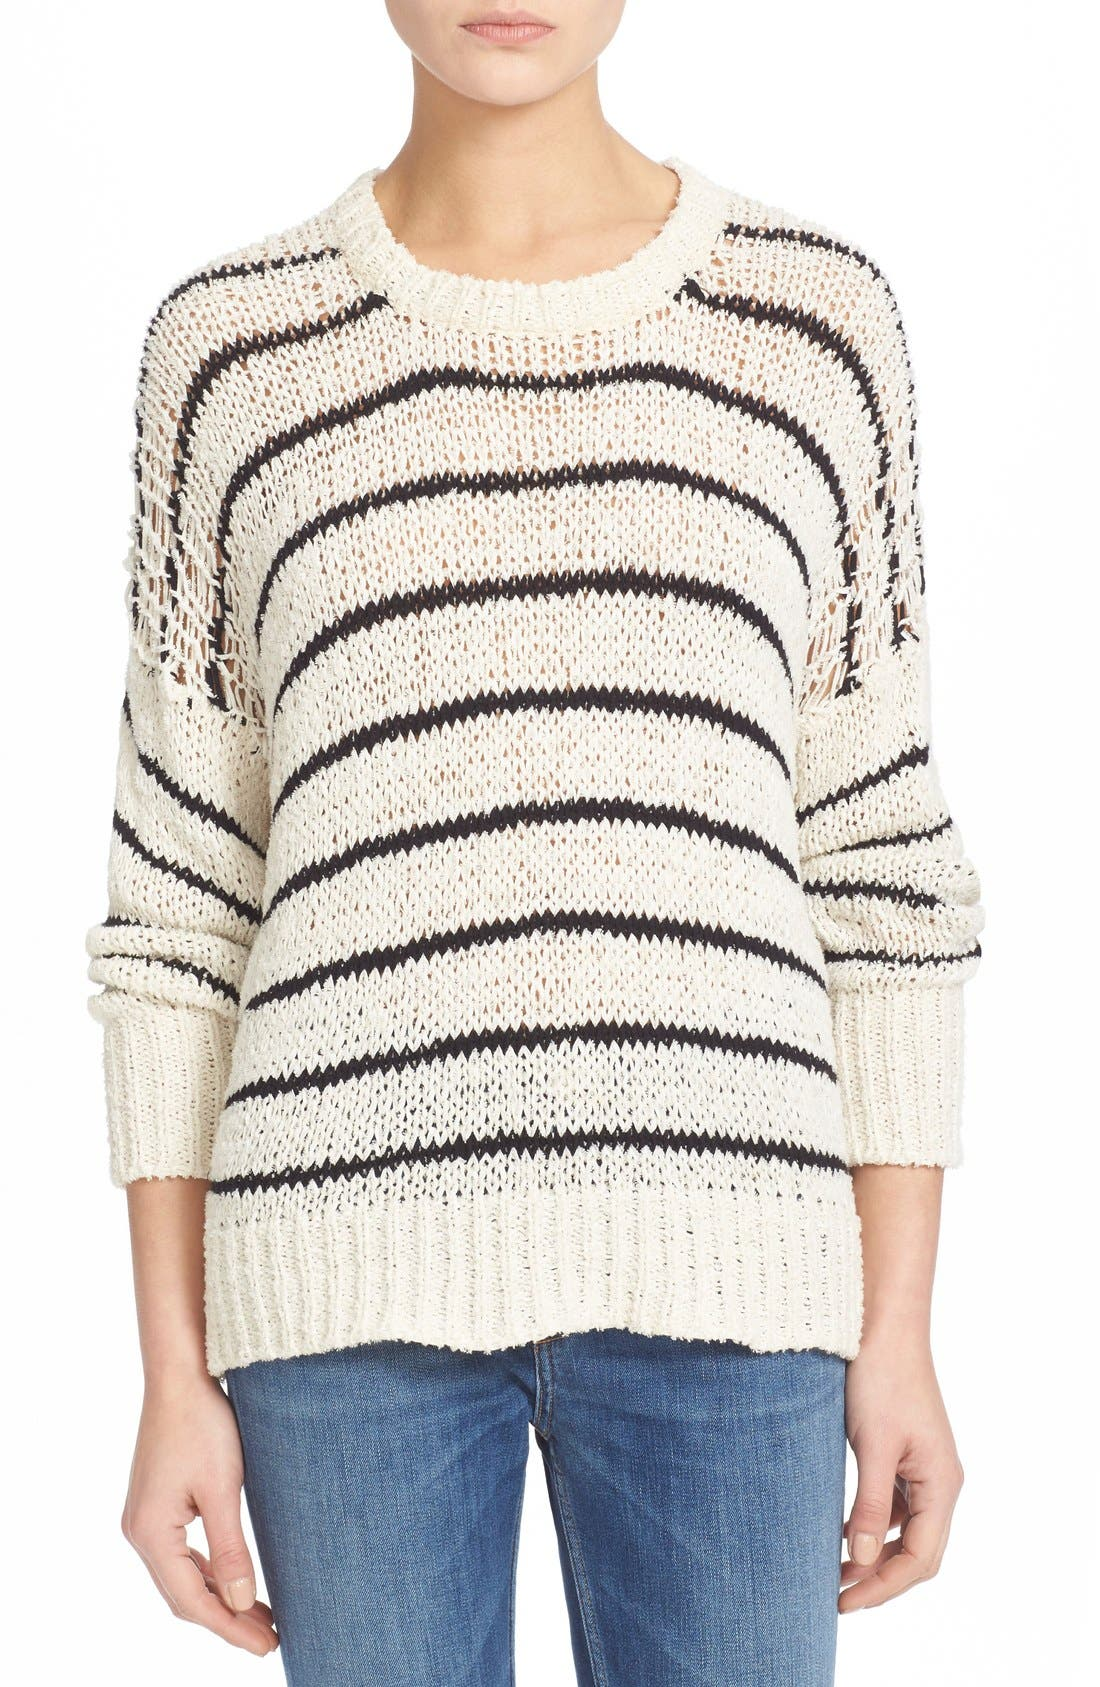 Alternate Image 1 Selected - IRO Stripe Cotton Blend Knit Sweater